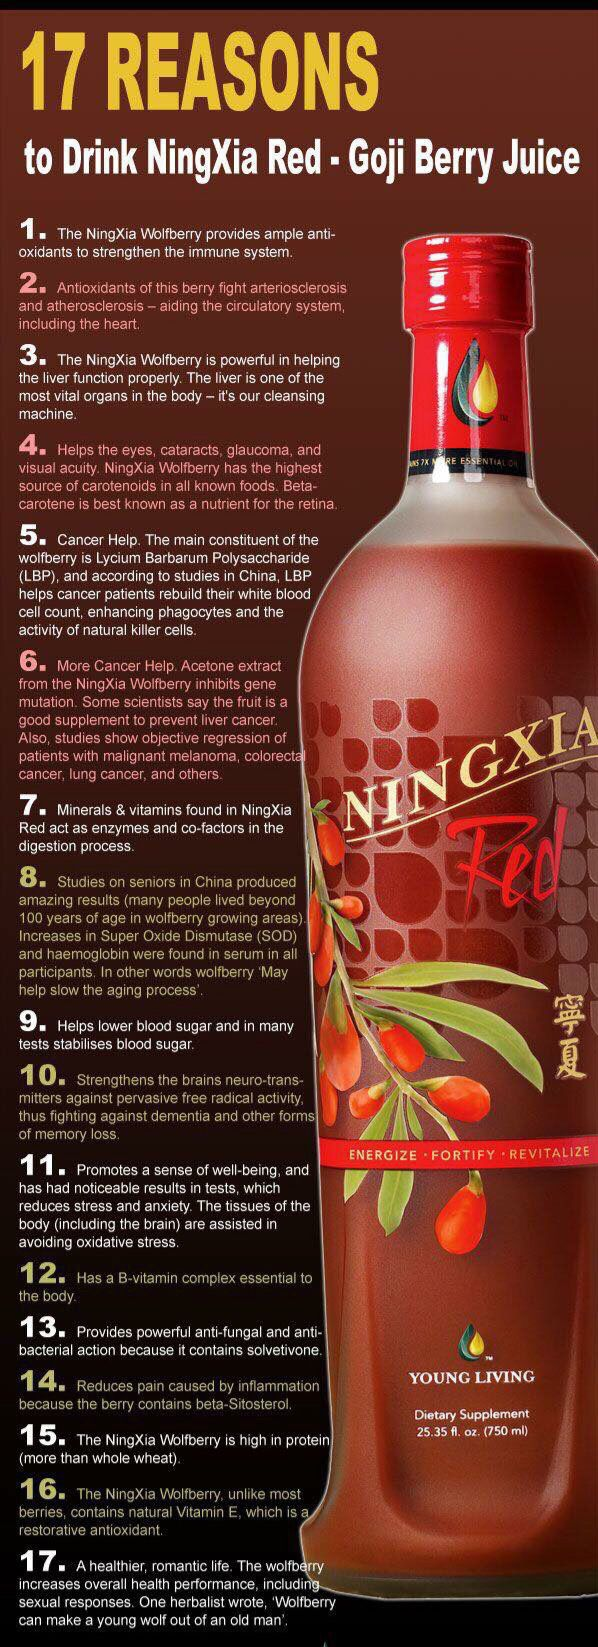 Sign uphereto start enjoying the many benefits from Young https://www.youngliving.com/vo/#/signup/start?sponsorid=3371890&enrollerid=3371890&isocountrycode=US&isolanguagecode=en&type=member Living'sNingXia Red!